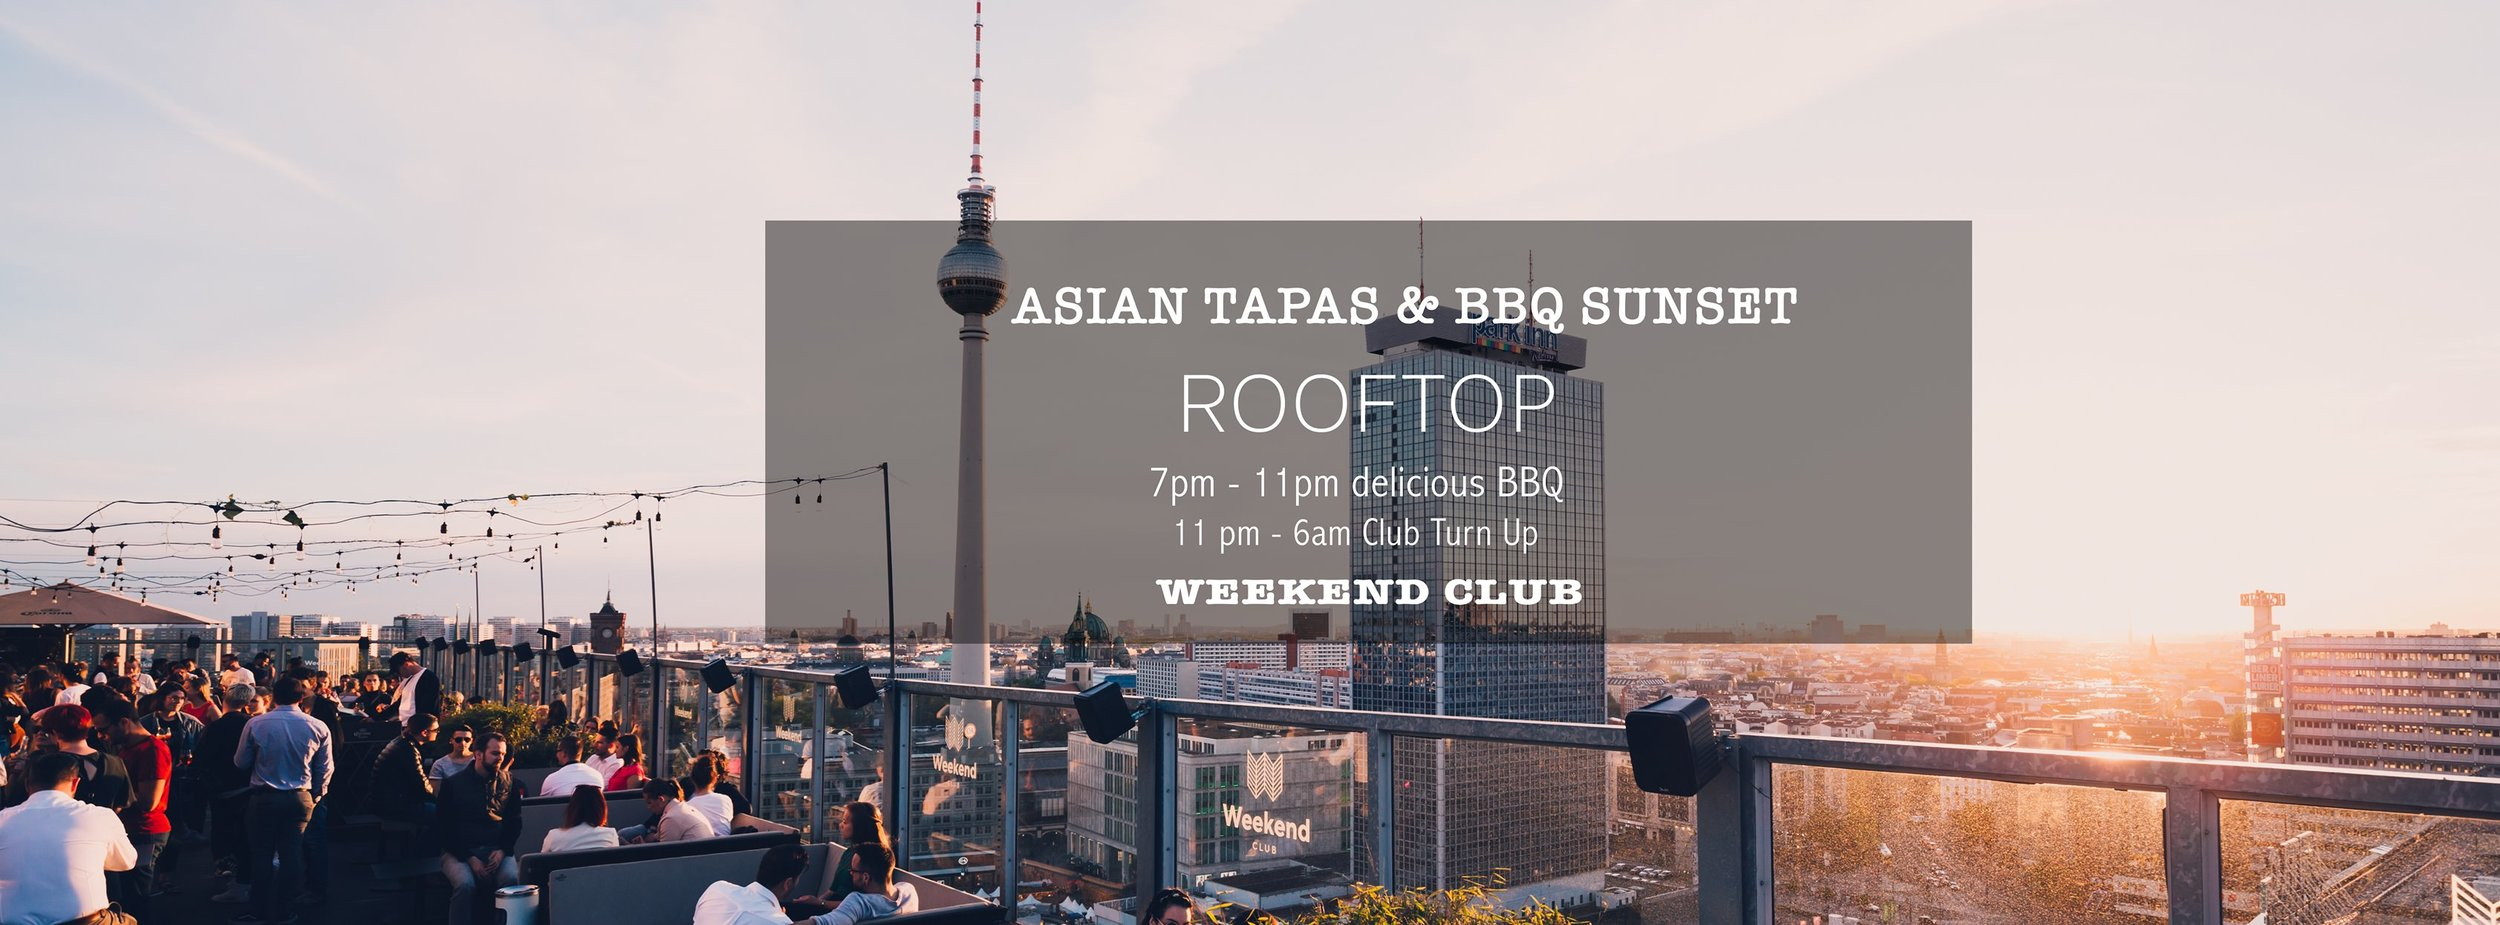 Asian Tapas & BBQ Sunset  ❖ ASIAN TAPAS with different options of meat & vegan  ❖ 300 qm2 roof top terrace ❖ International DJ Line Up   19:00 Uhr Rooftop   23:00 Uhr Club